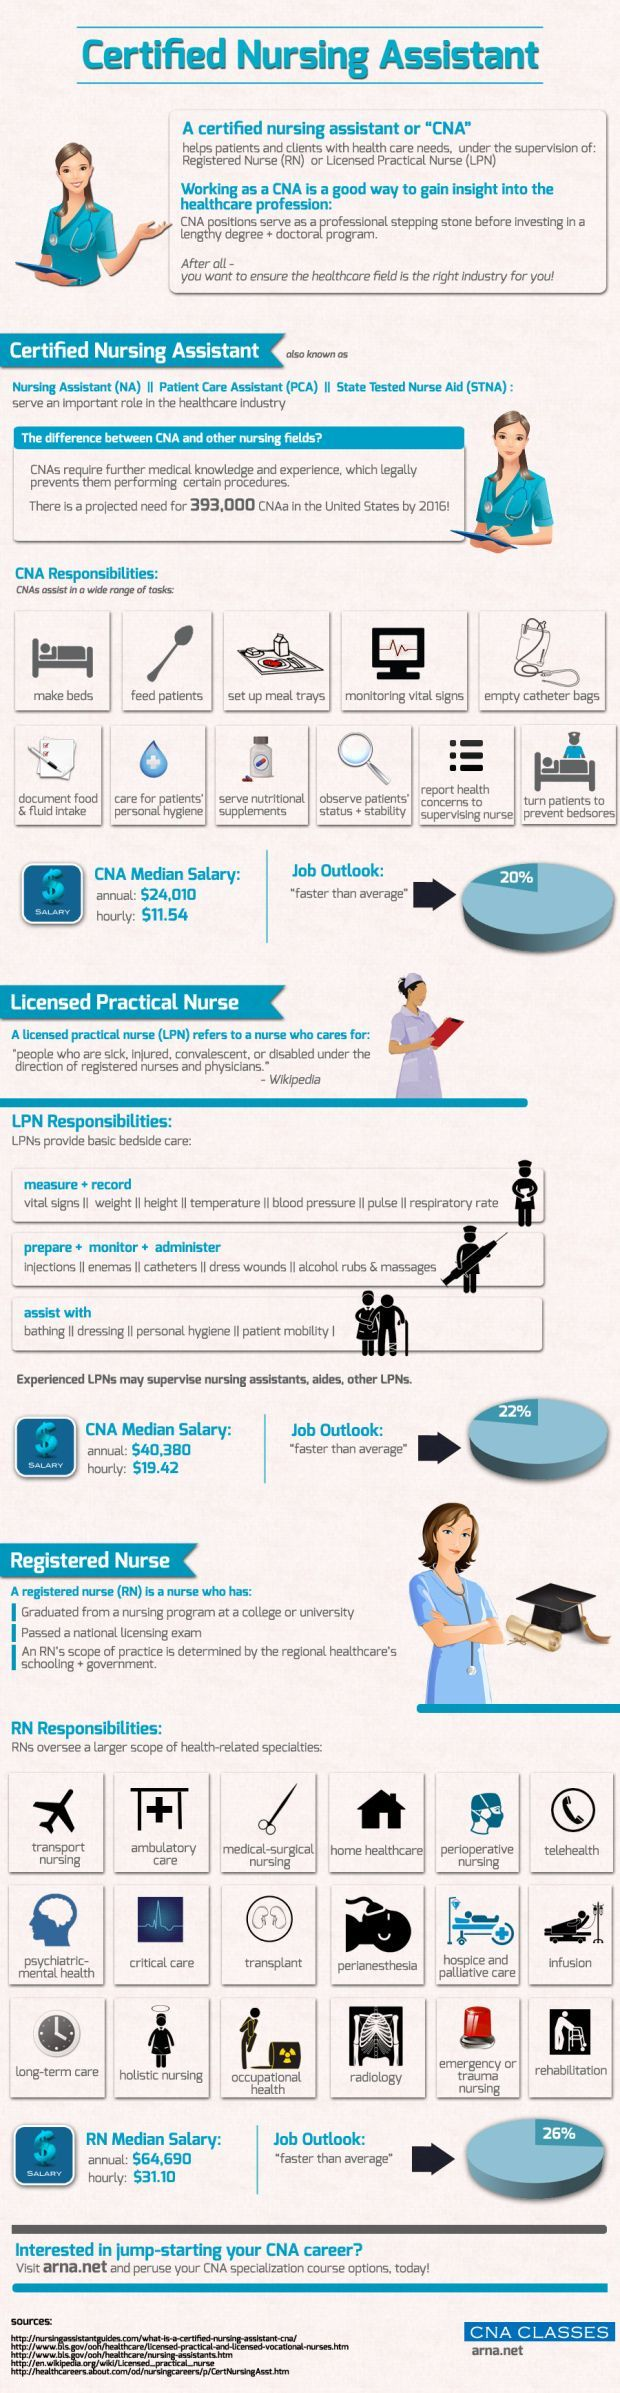 Best 25 cna programs ideas on pinterest certified nursing a great cna certified nursing assistant educational infographic httpwww xflitez Choice Image